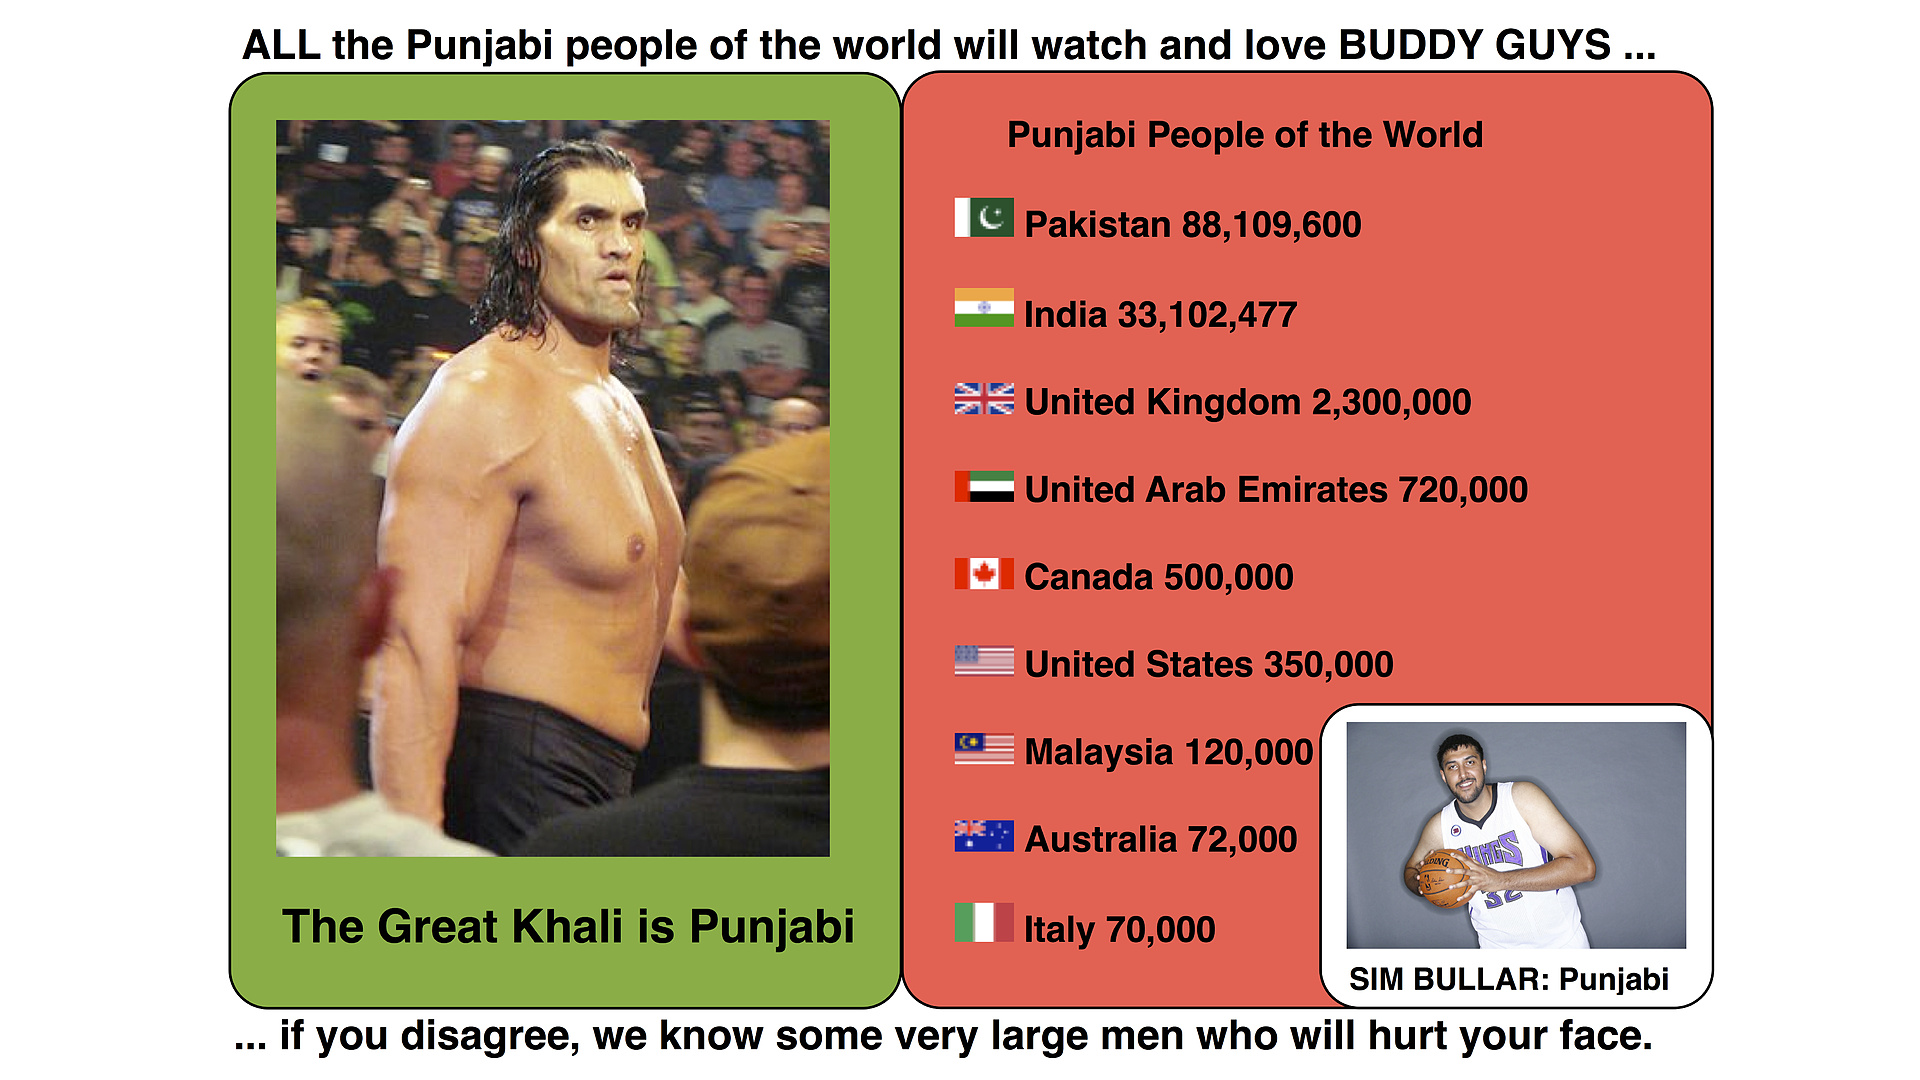 Buddy Guys has a Global Audience!